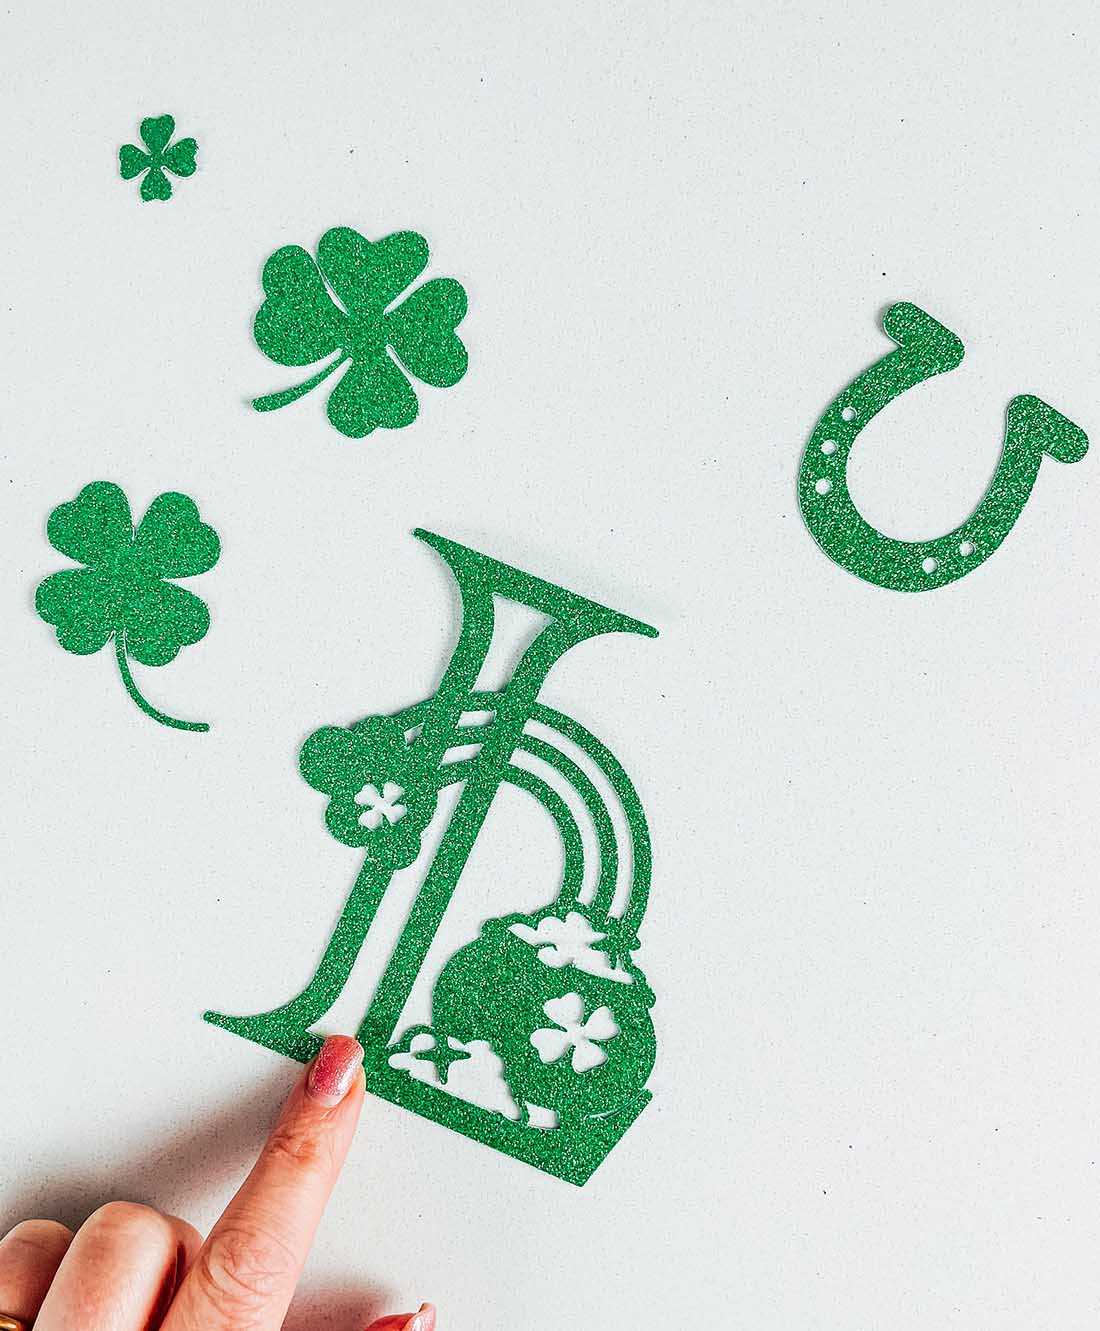 Creating A St. Patricks Day Crafts With Cricut